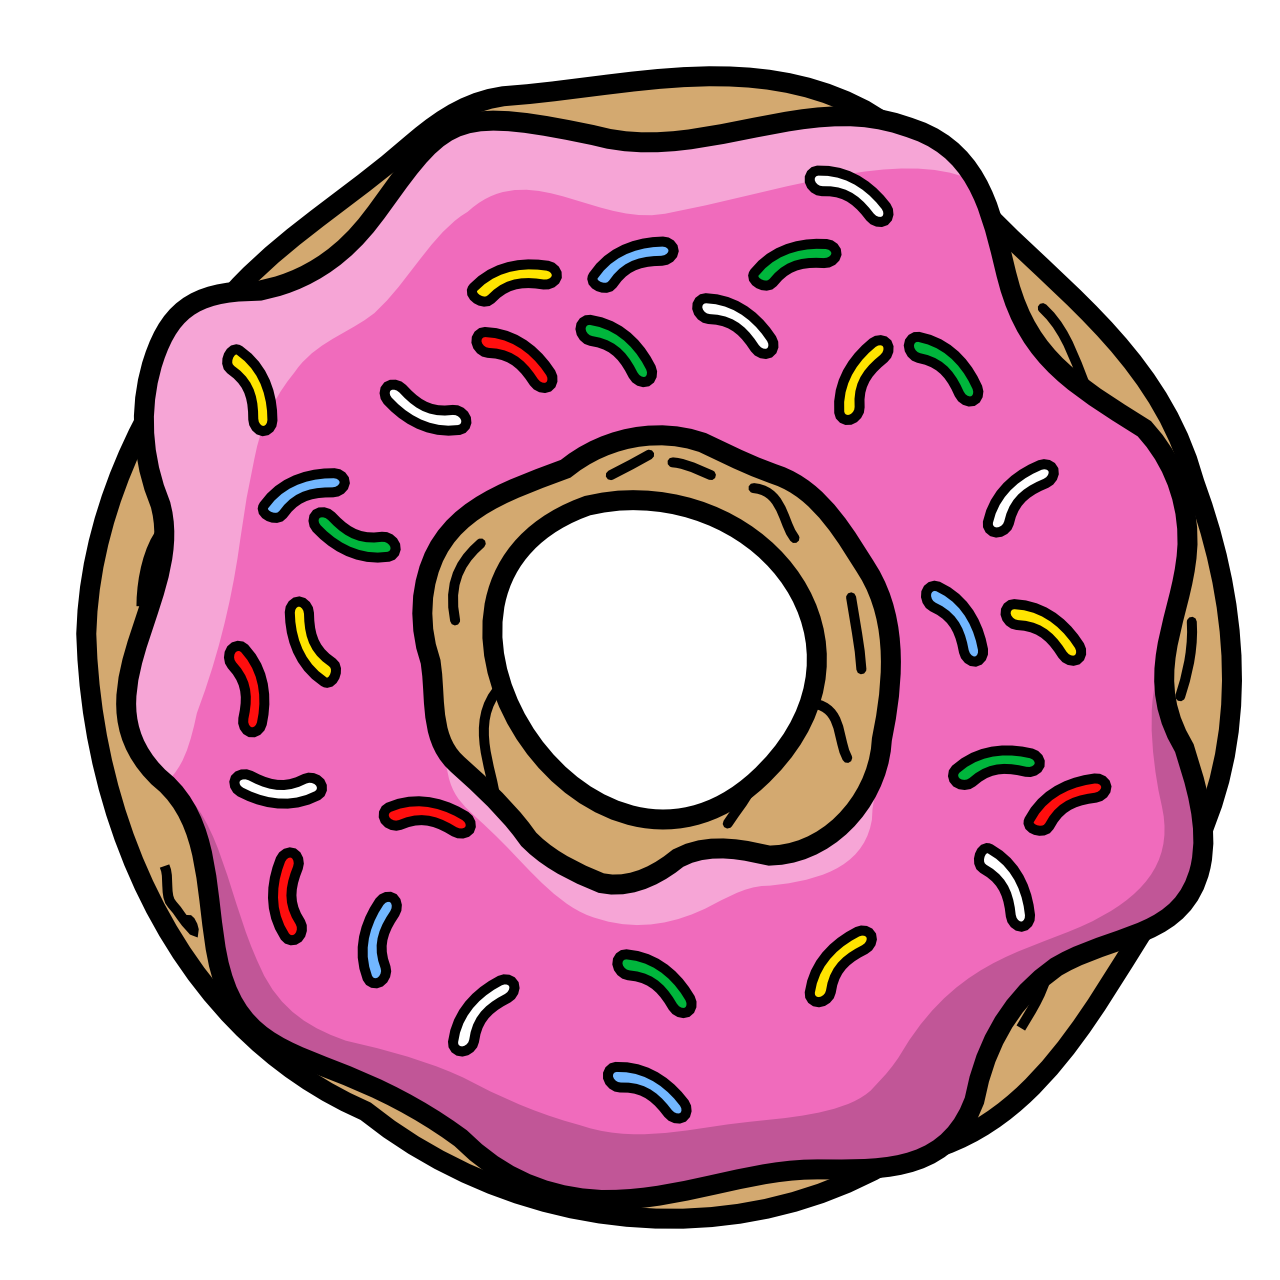 Cartoon donut png. Doughnut icing sprinkles transprent